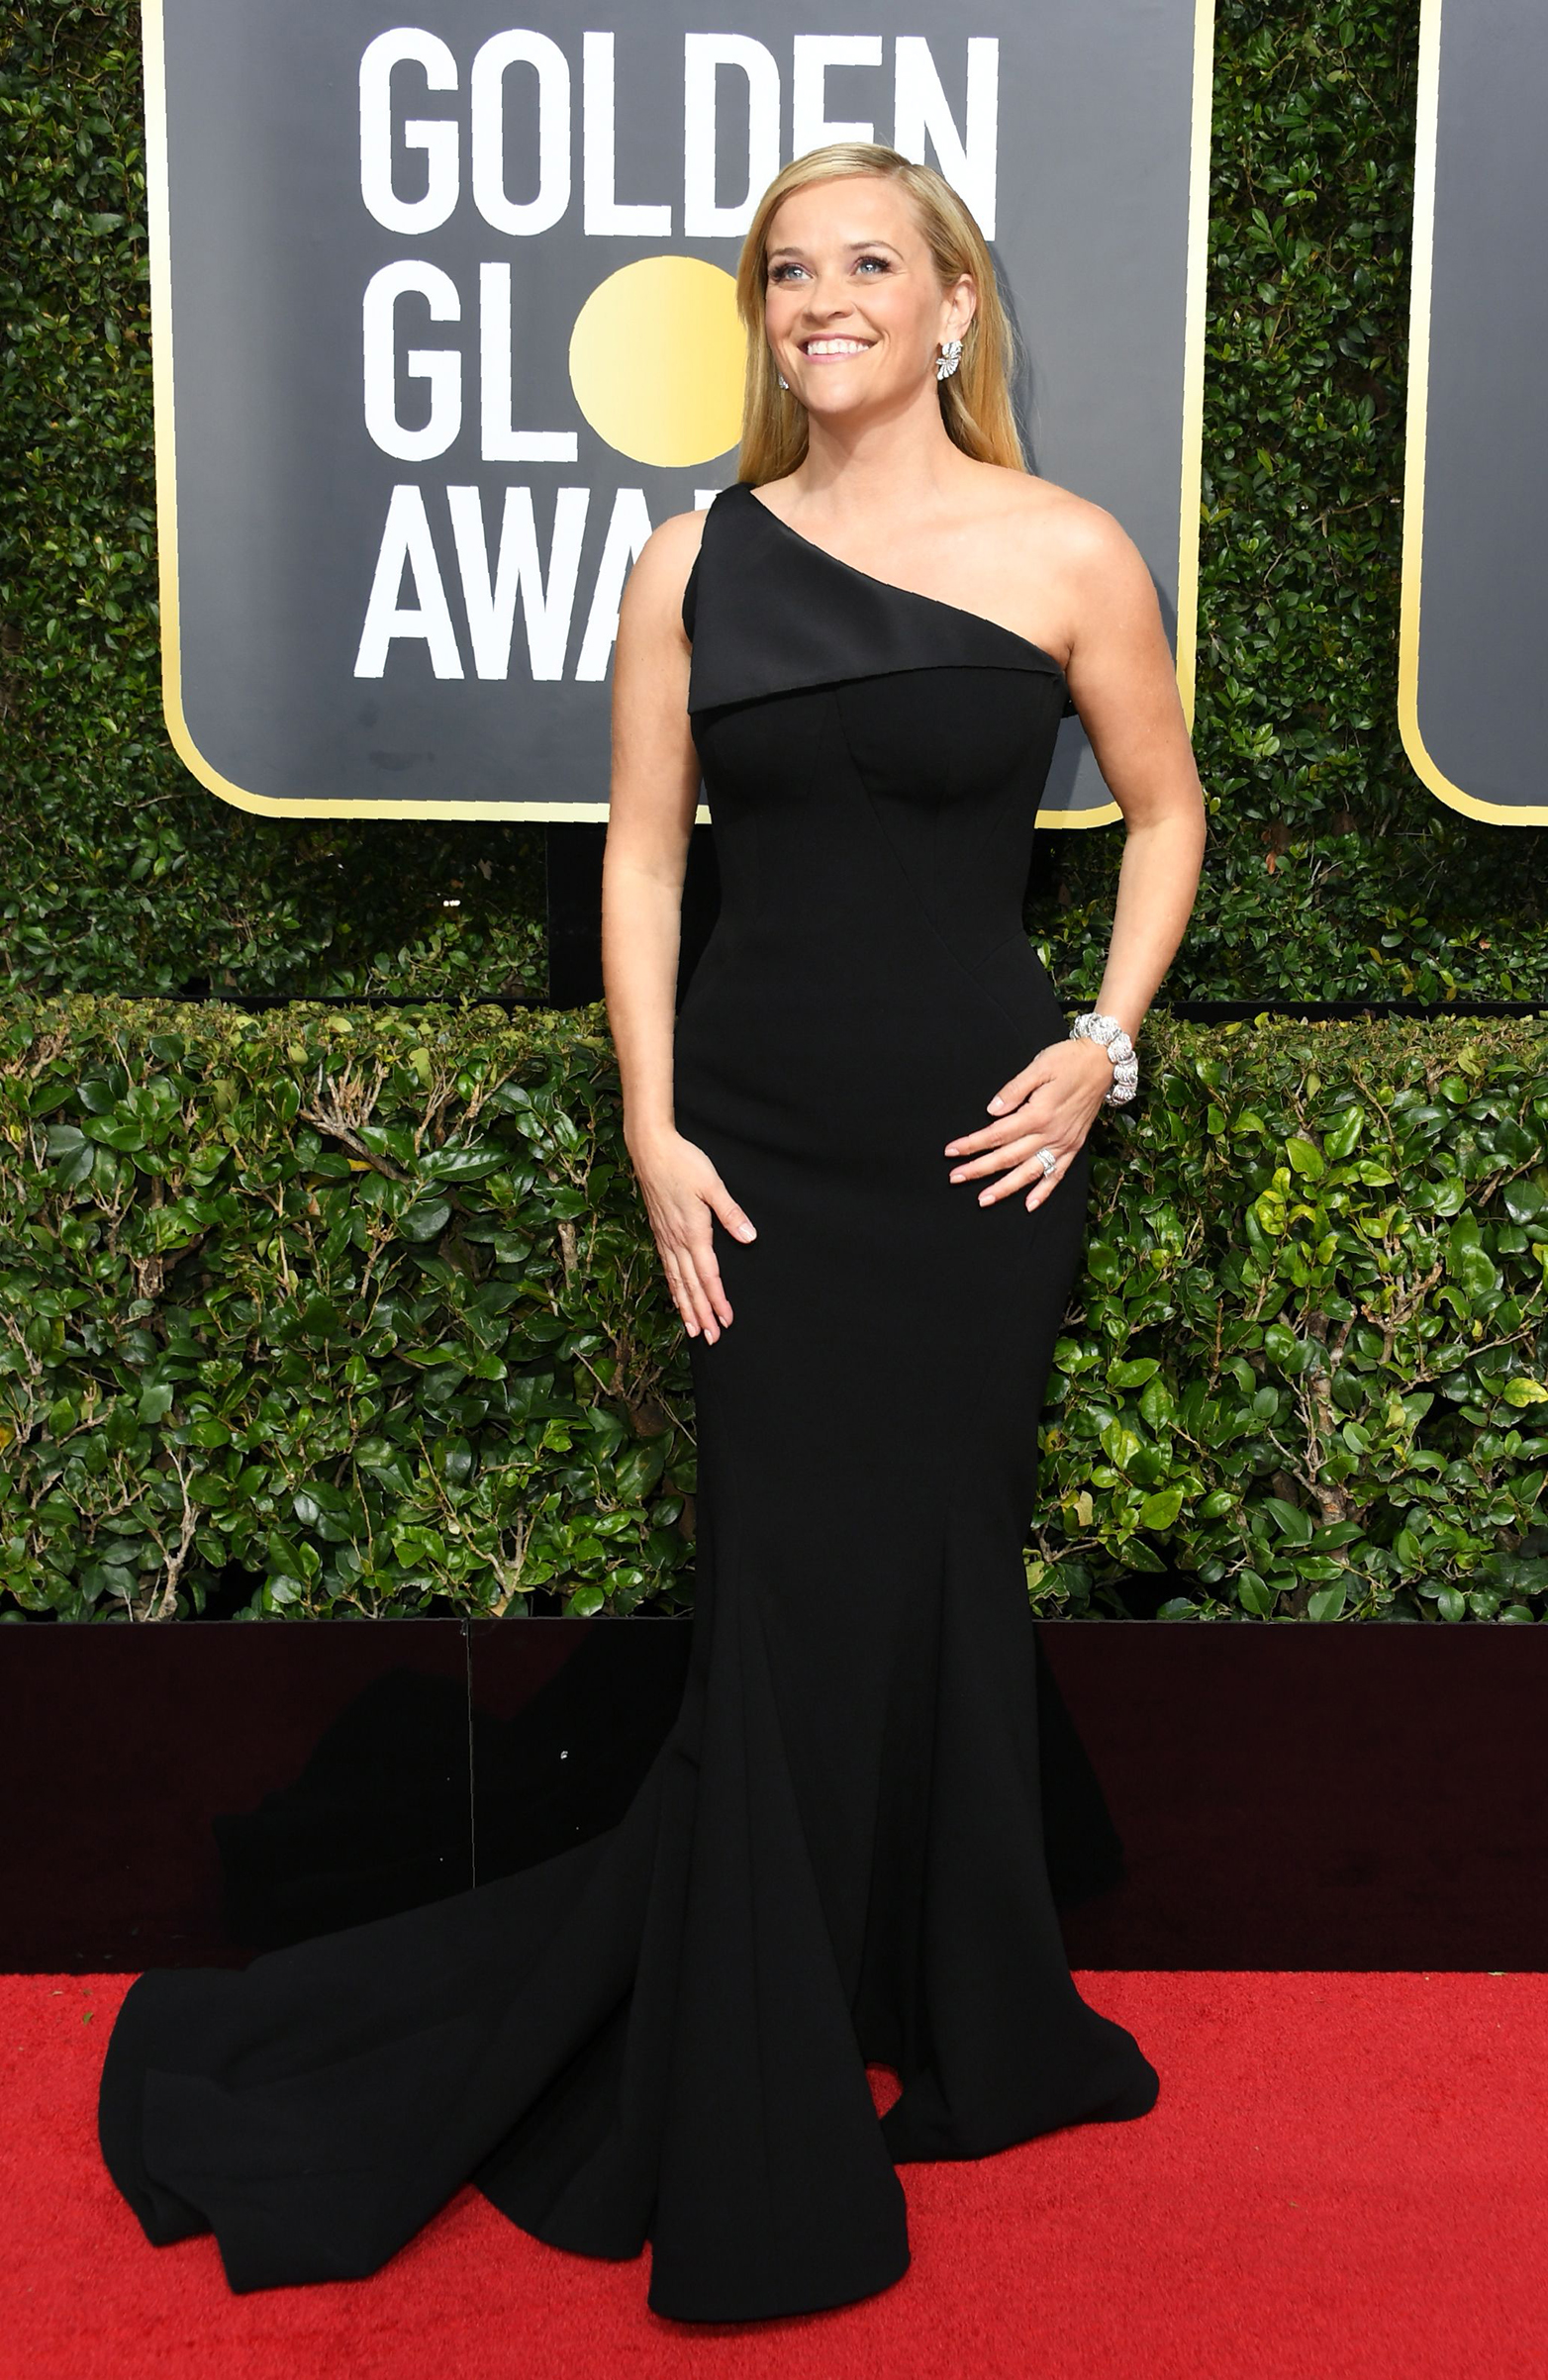 Reese Witherspoon arrives for the 75th Golden Globe Awards on January 7, 2018, in Beverly Hills, California.